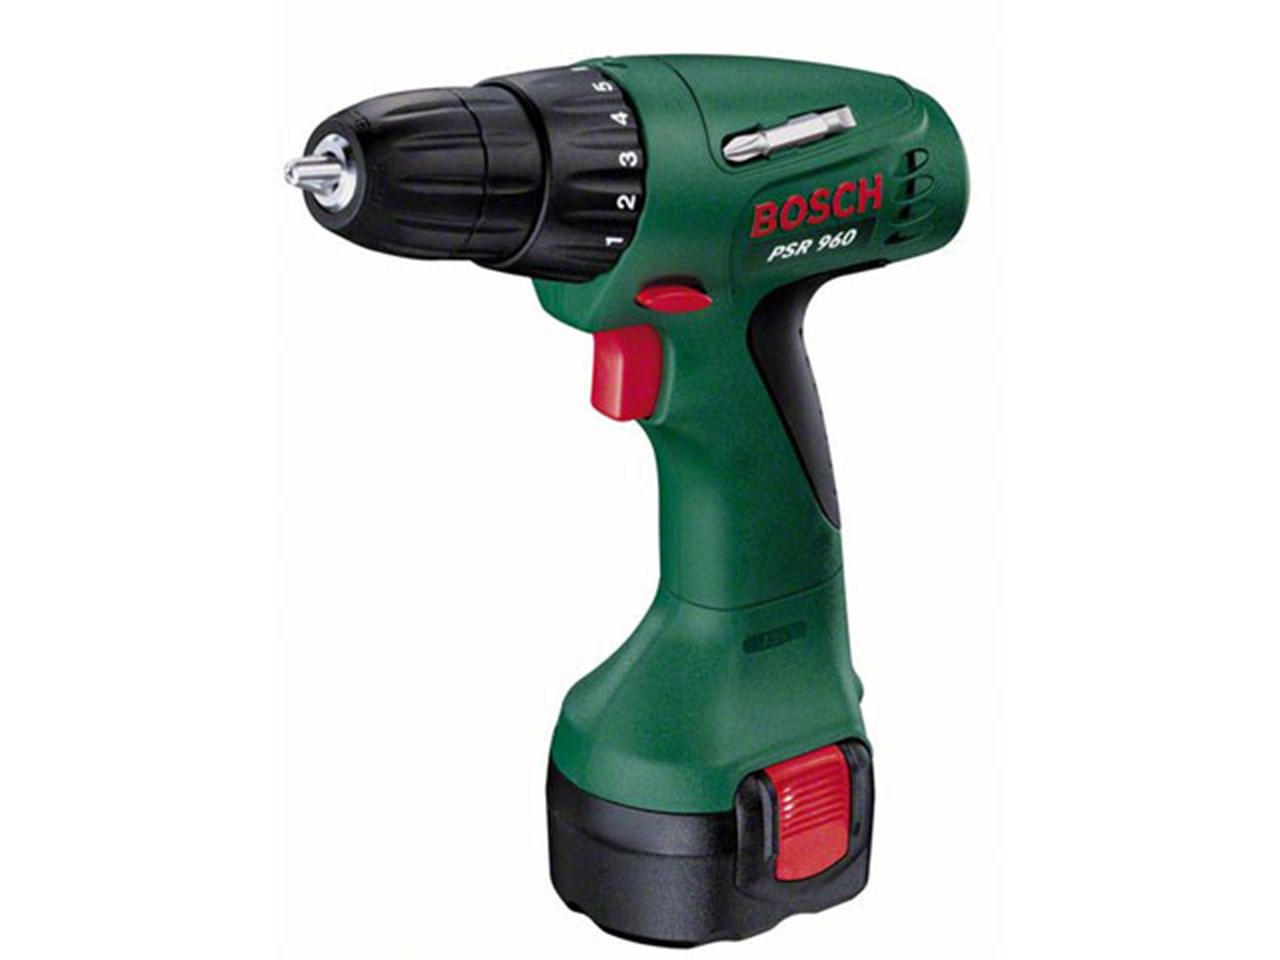 bosch psr 960 cordless drill driver. Black Bedroom Furniture Sets. Home Design Ideas